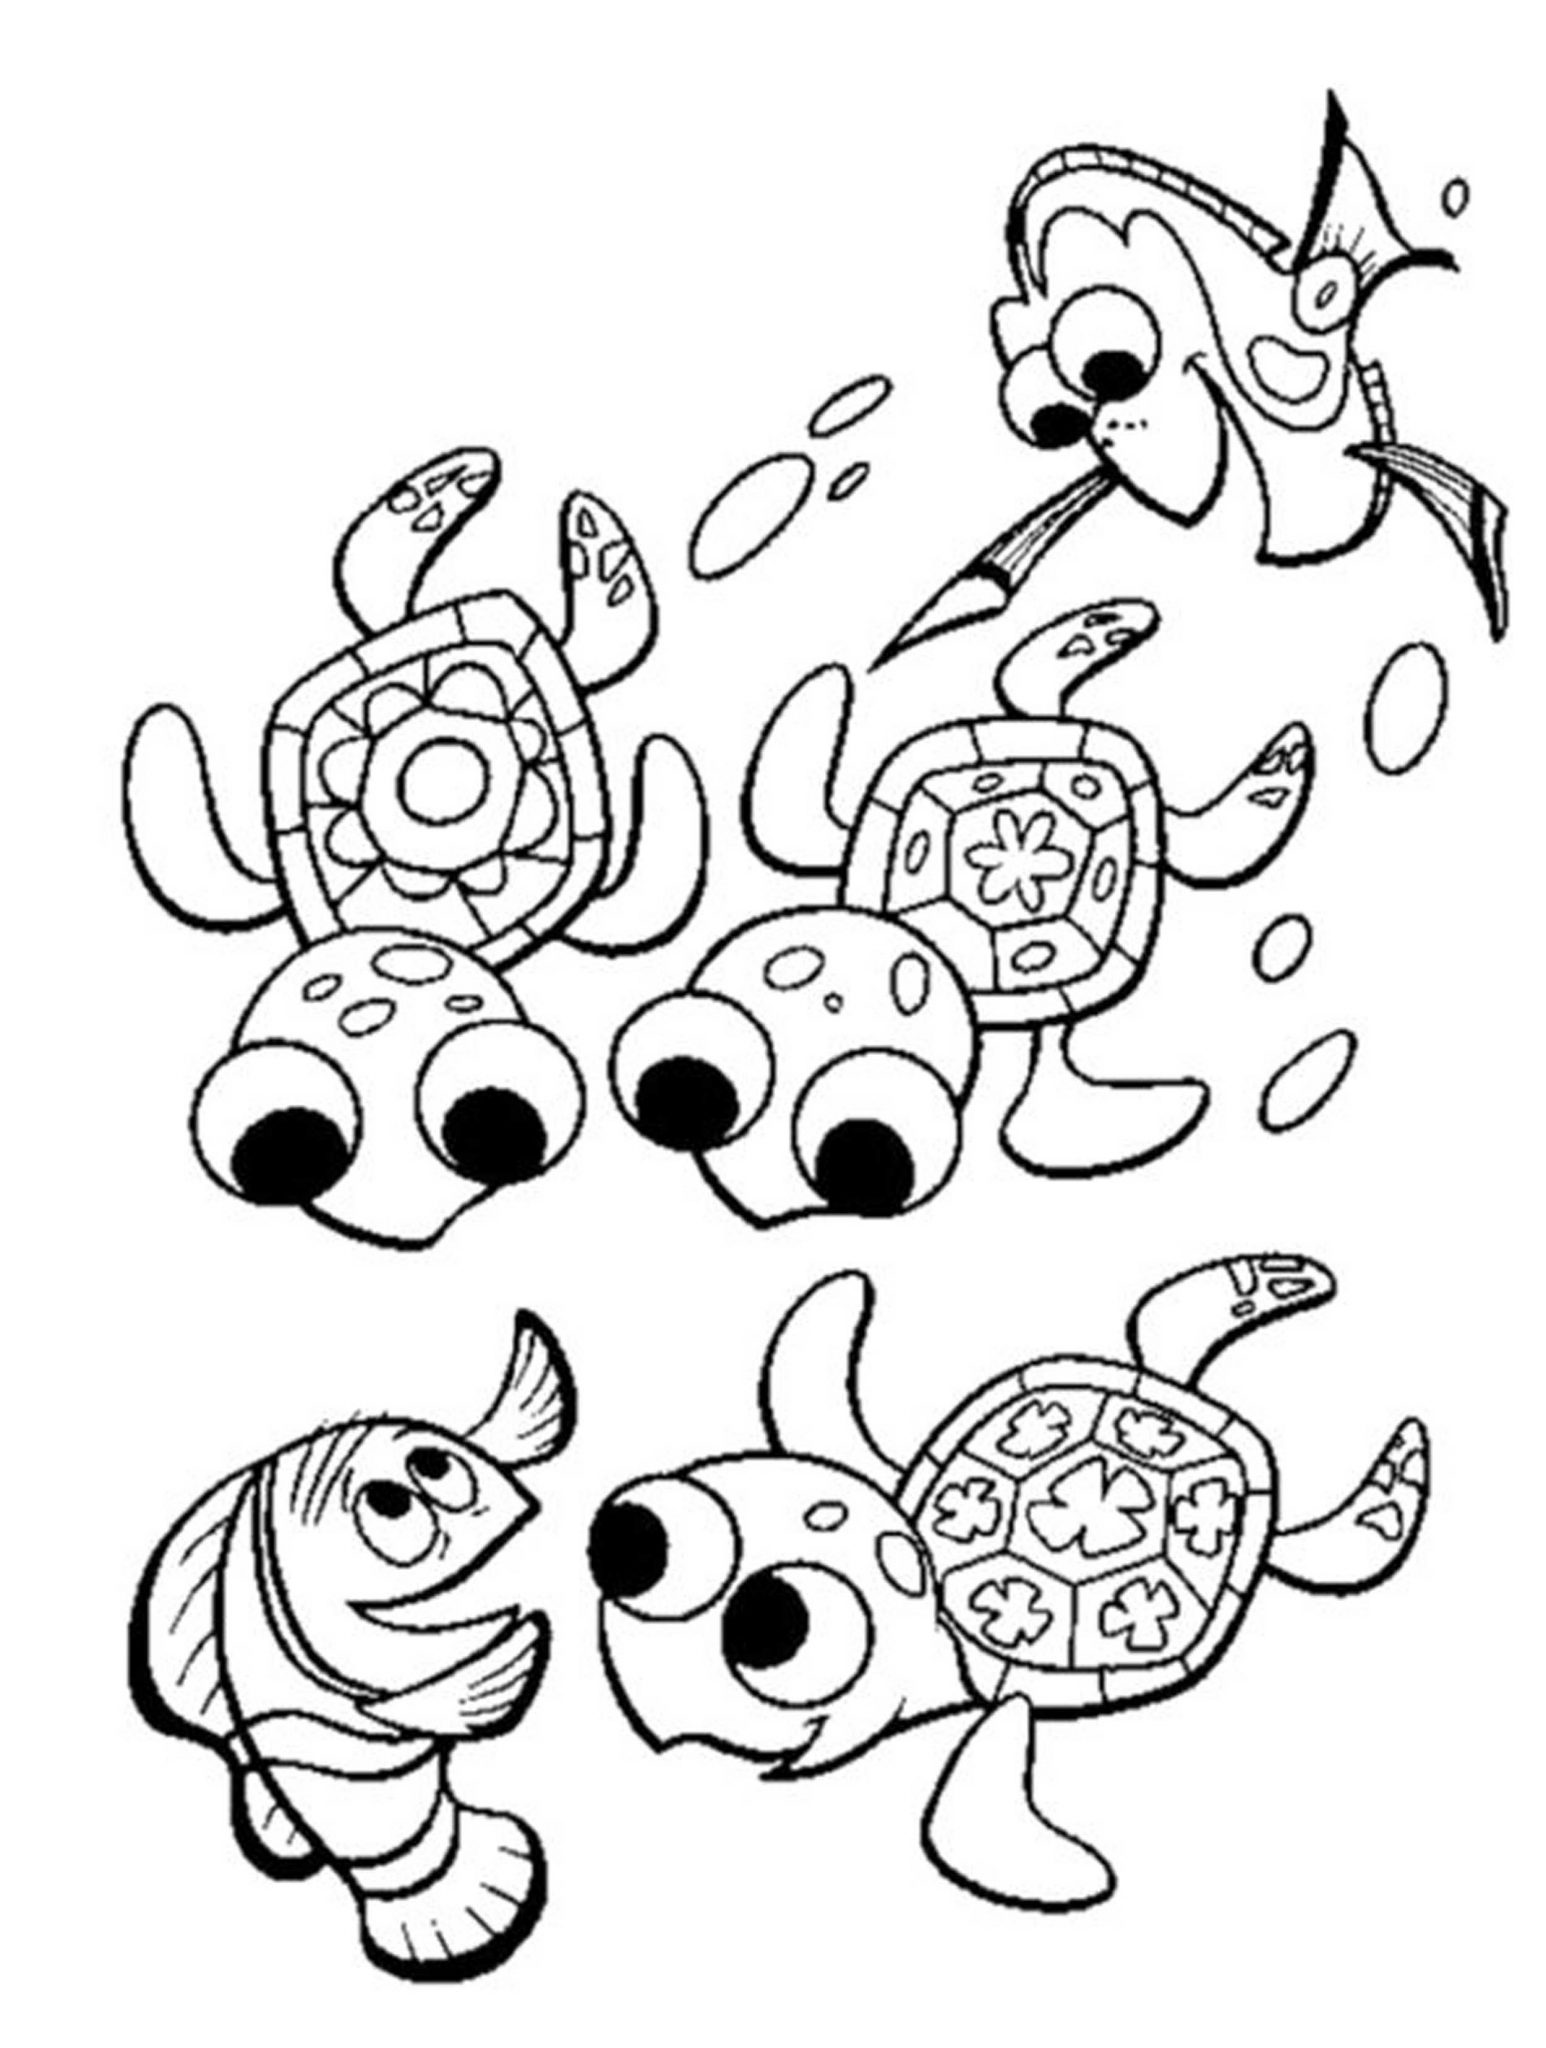 sea turtle coloring pages printable sea turtles coloring pages 408 free printable coloring printable turtle pages sea coloring